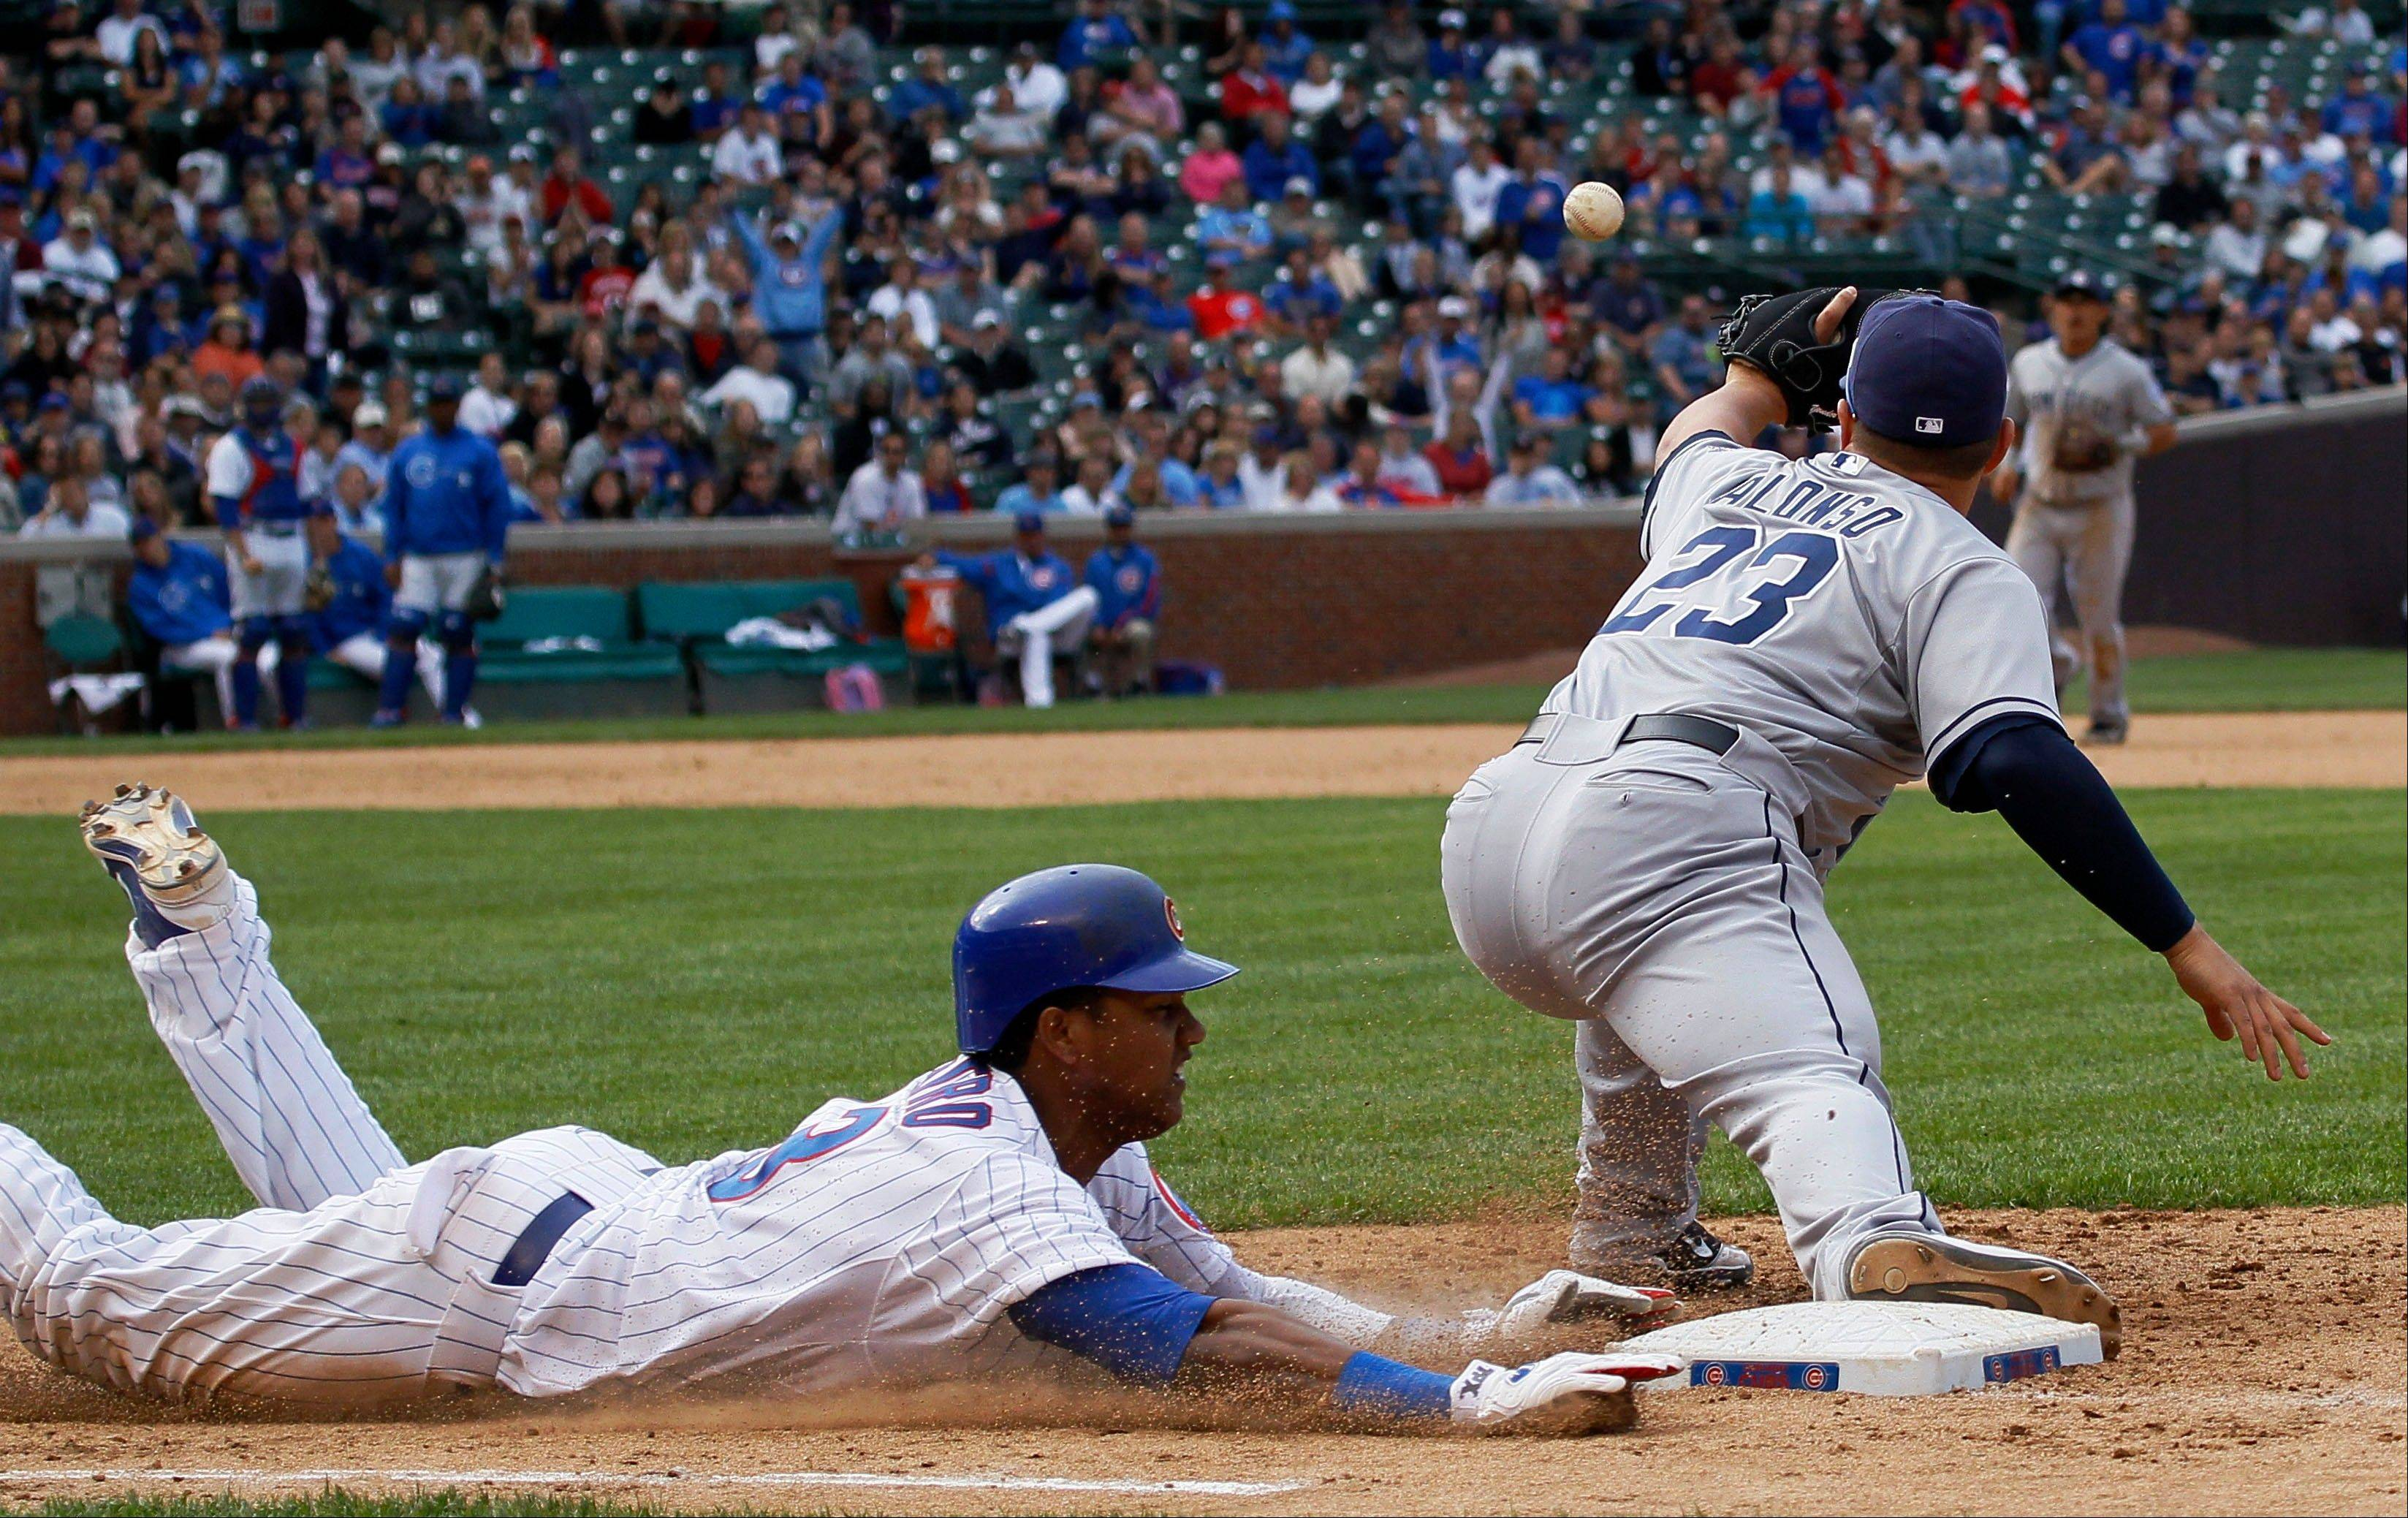 Cubs earn 3rd in a row on walk-off Barney blast